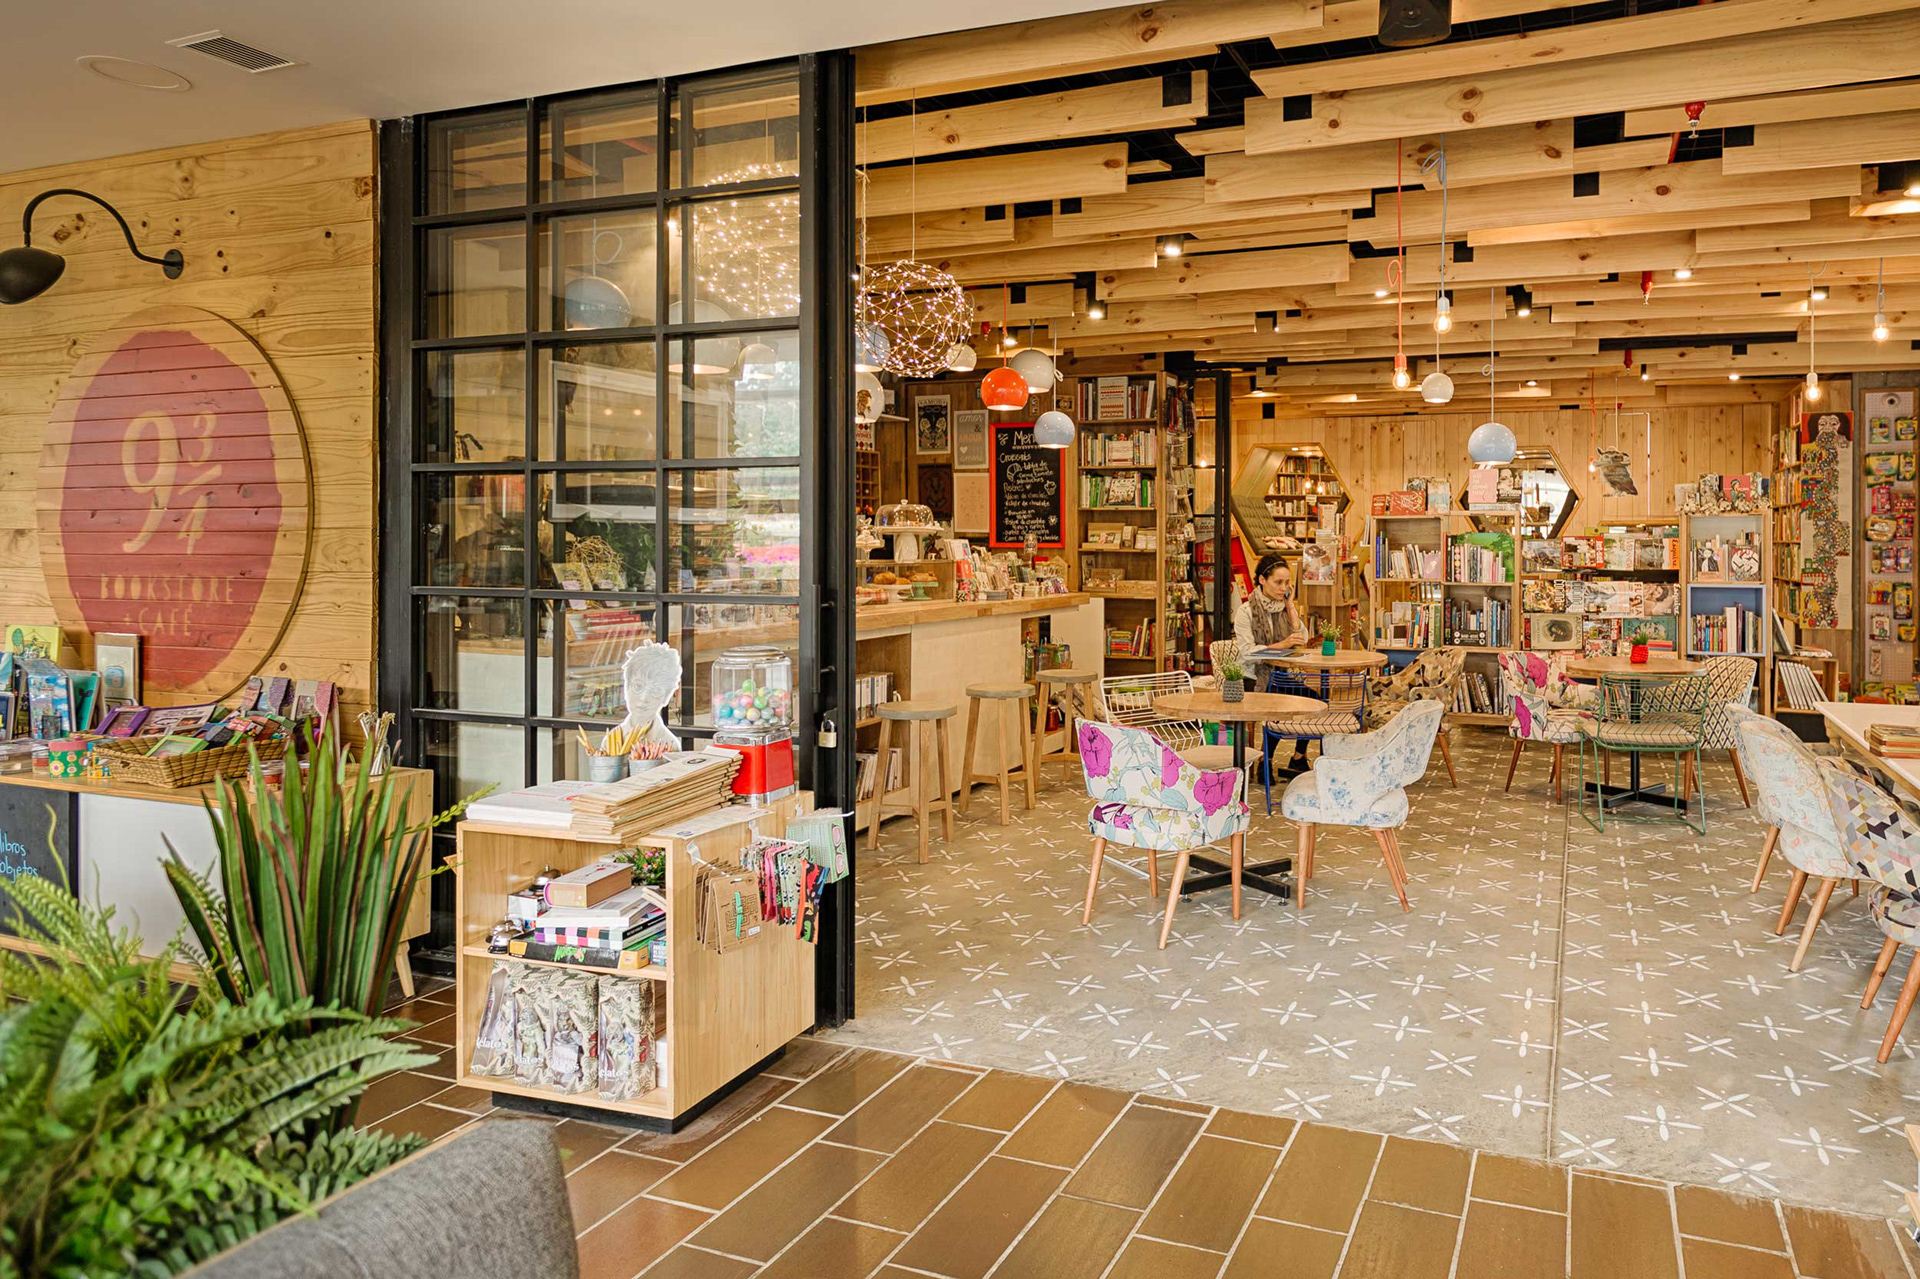 9 34 Bookstore Cafe 2